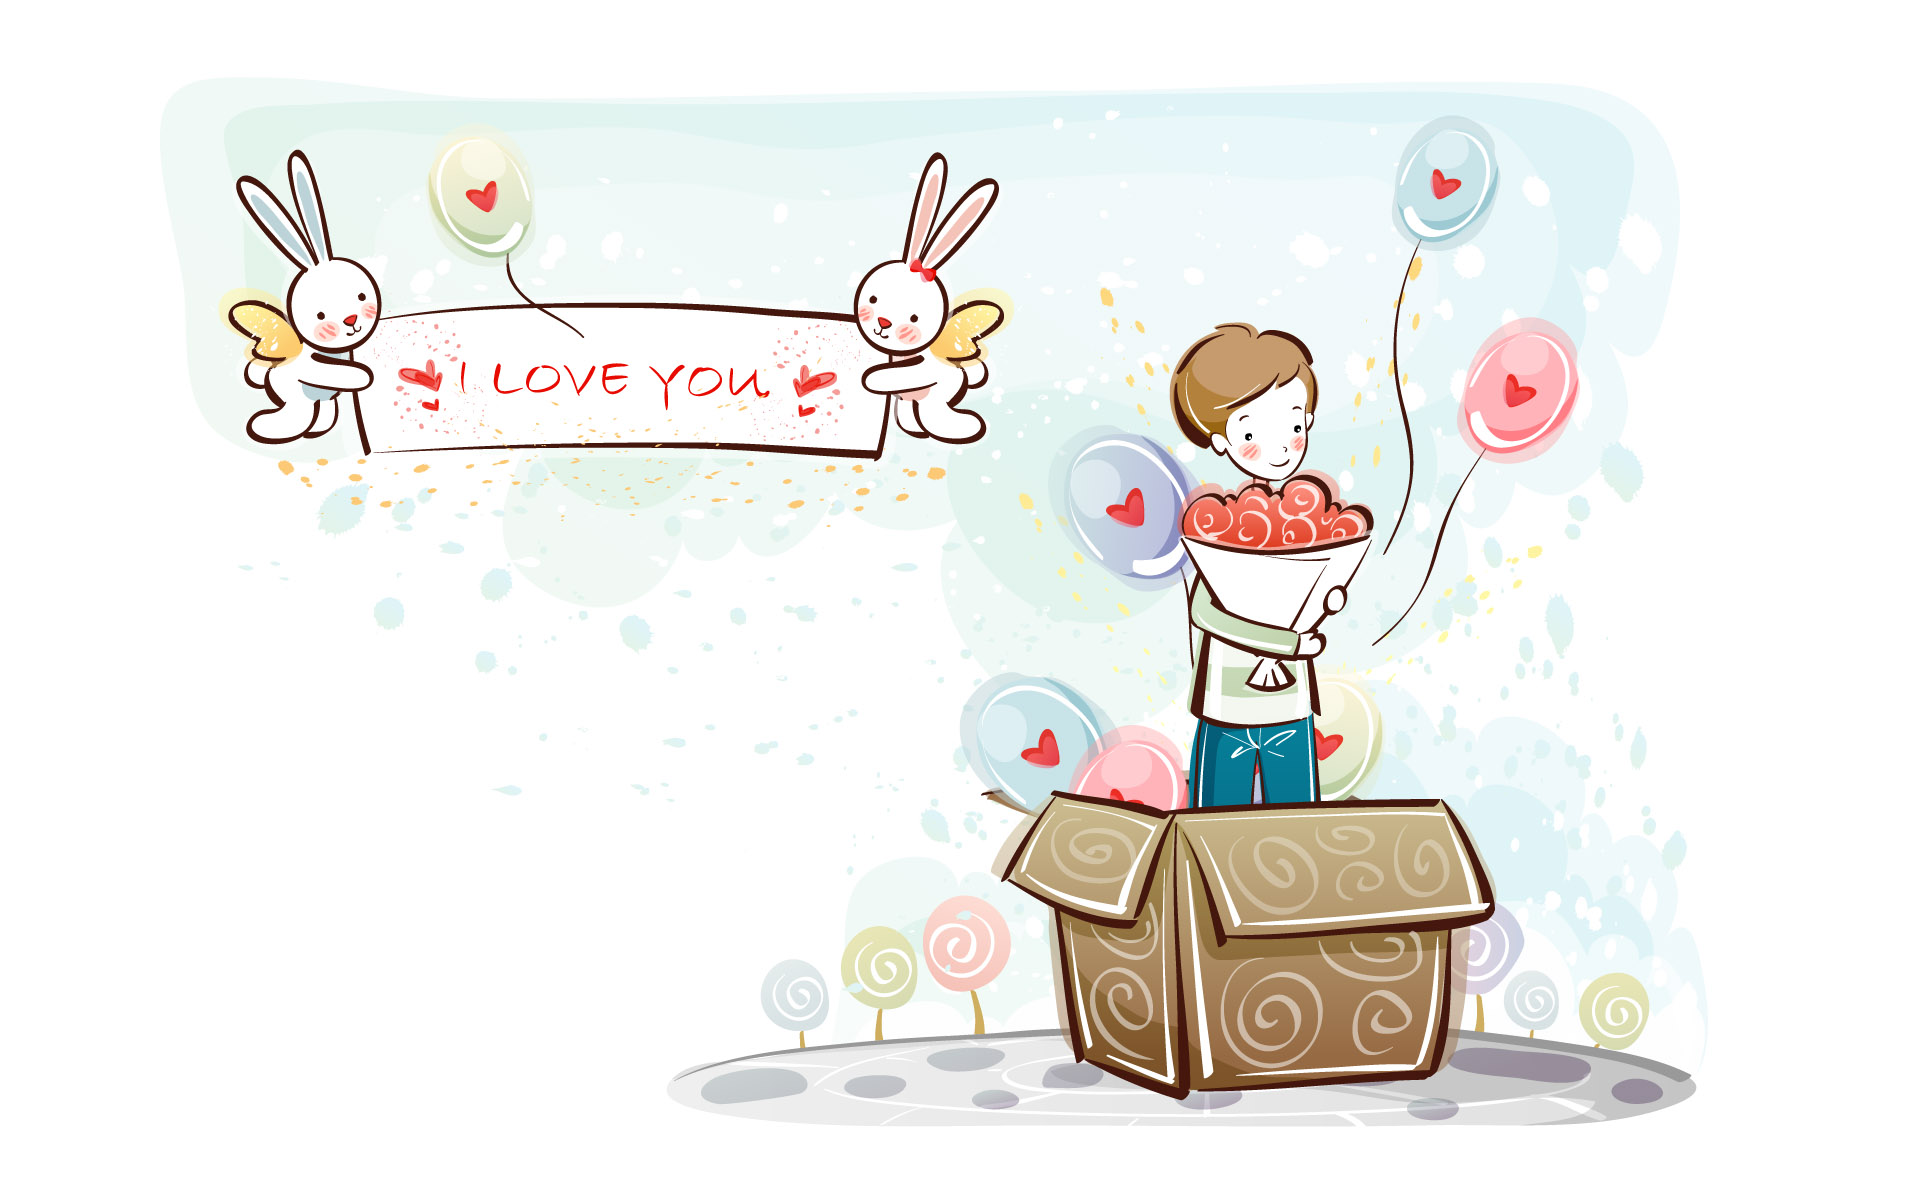 Romantic Valentine's Day illustration class 11291